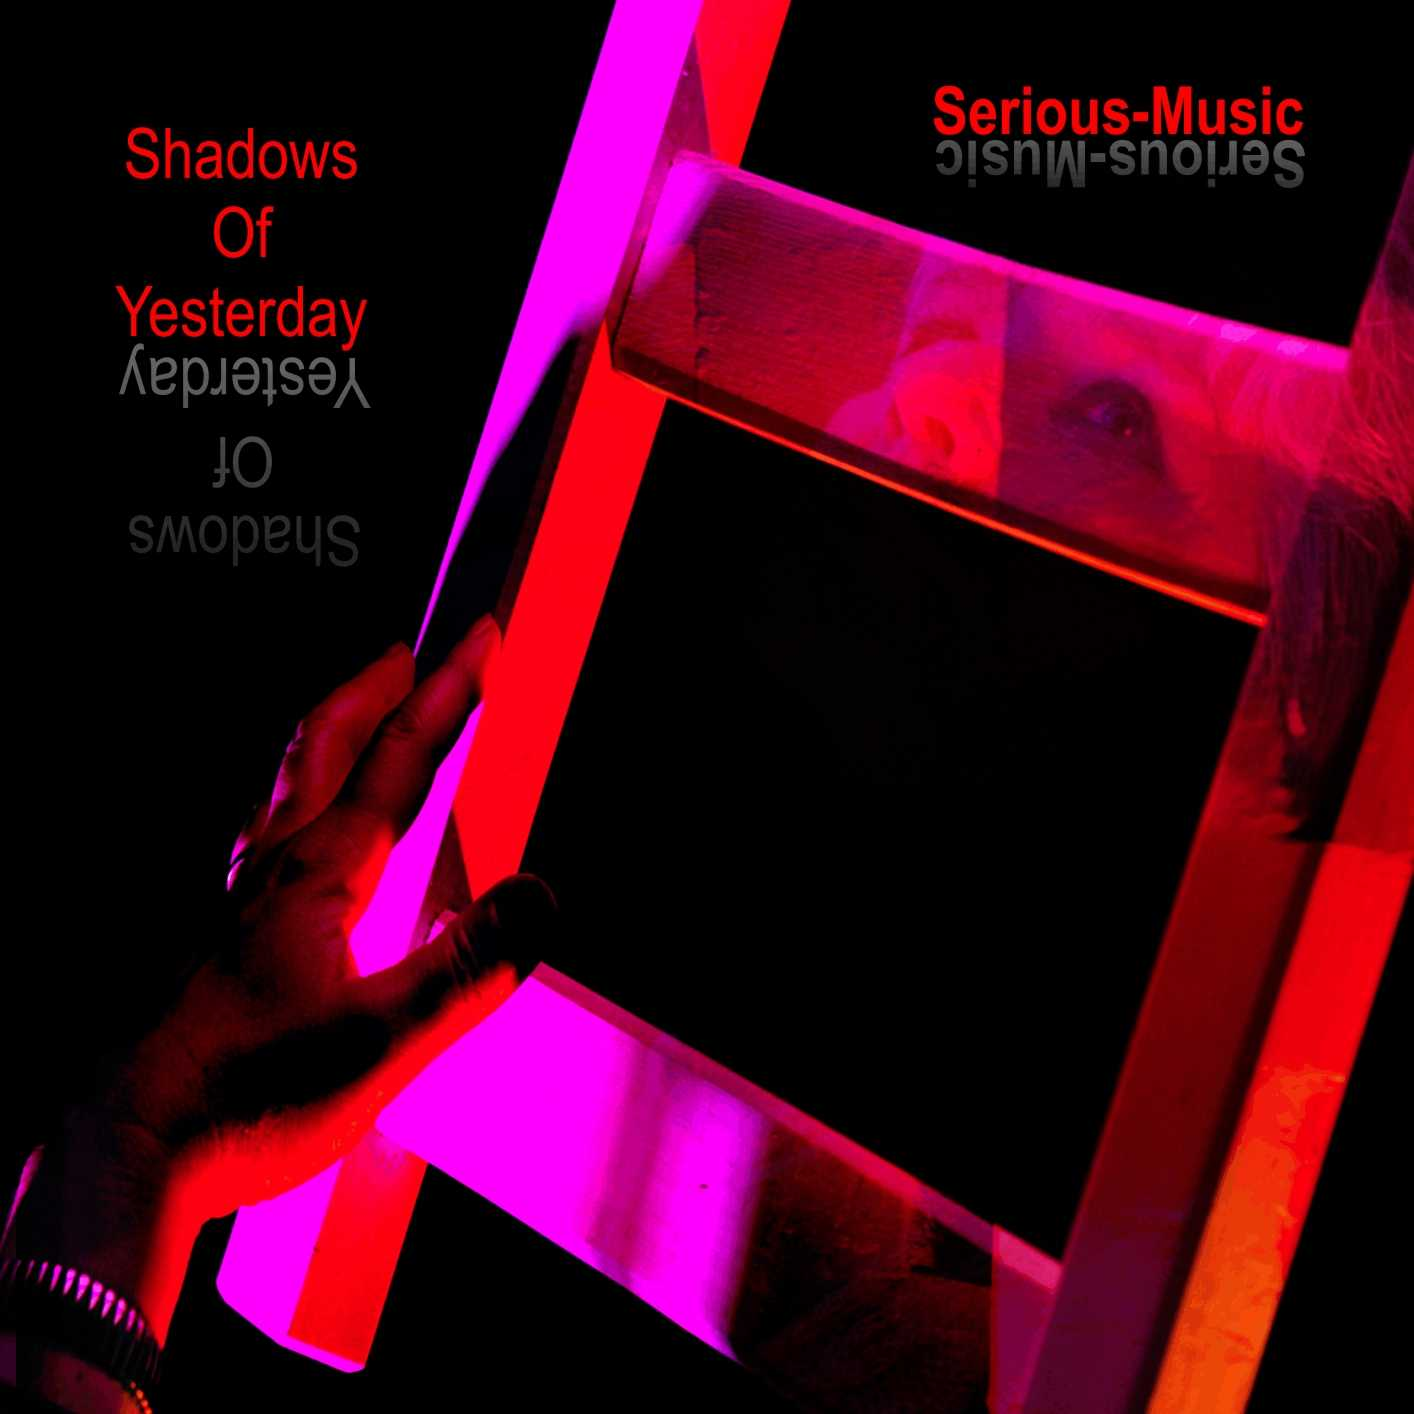 Shadows Of Yesterday feat. P.Dempsey, L.Sensi - Album SHADOWS OF YESTERDAY